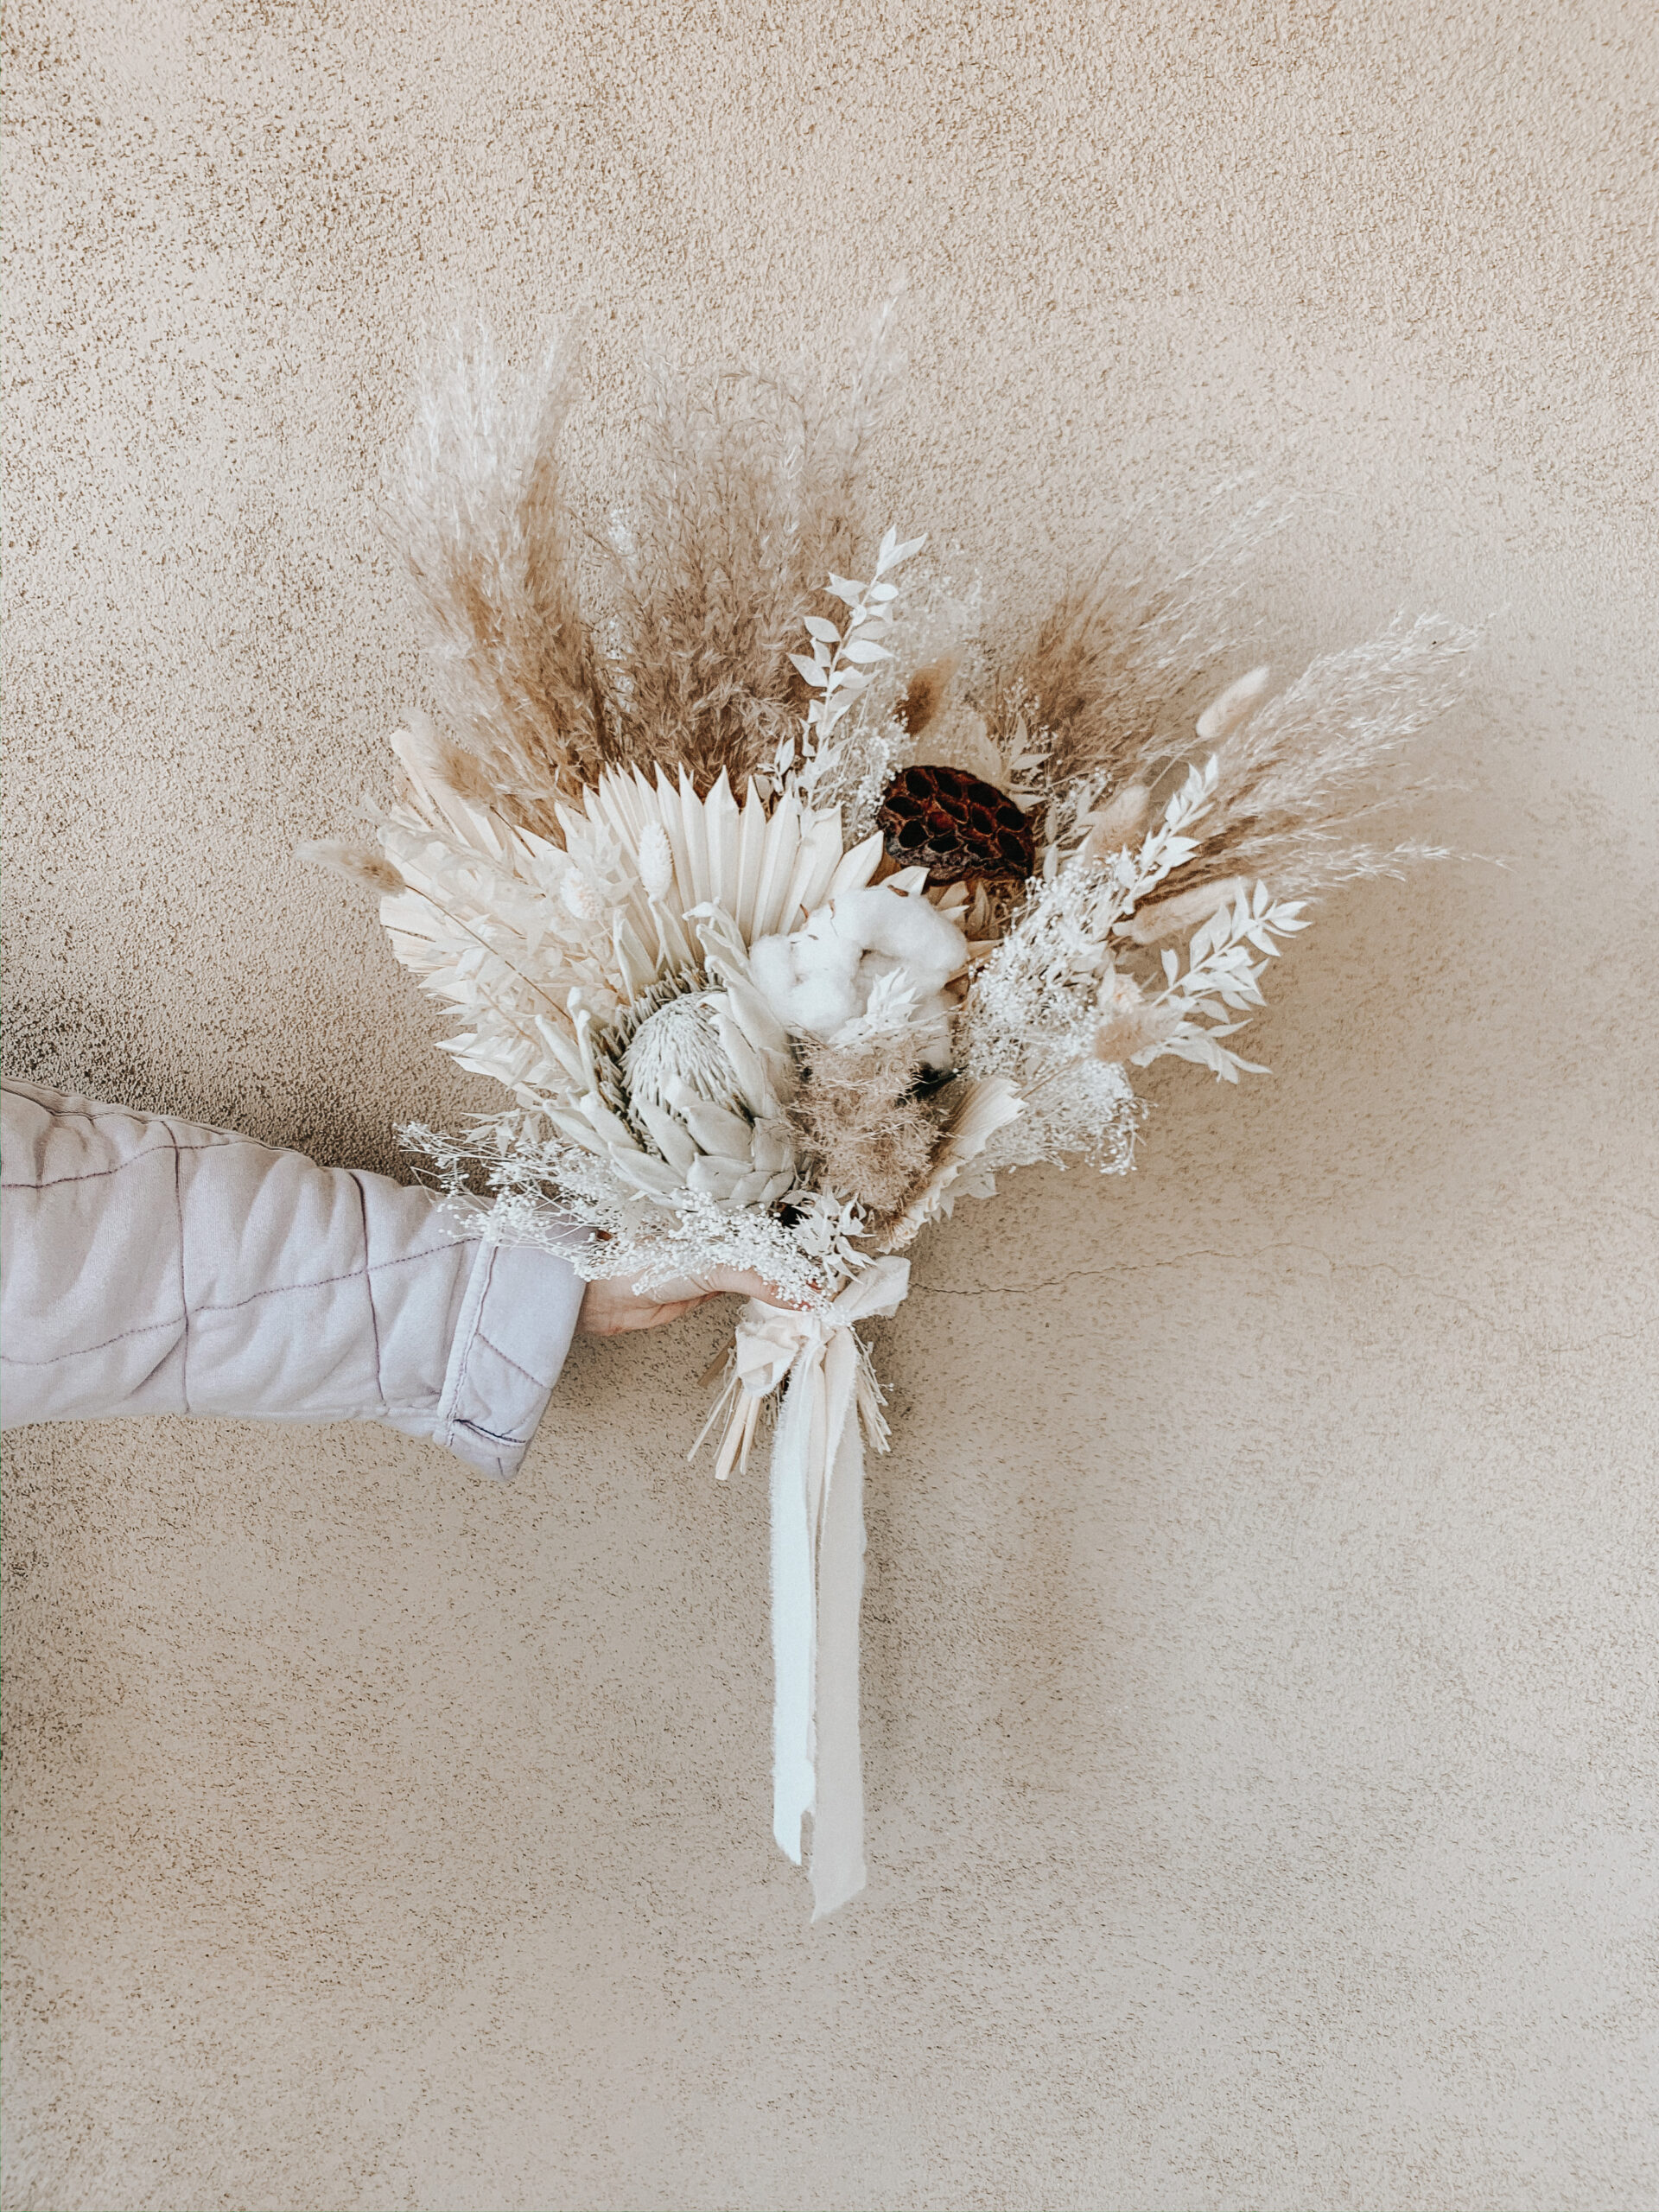 Where to find flowers for dried flower arrangements and the best flowers to choose. Pampas grass, bunny tail and protea flower arrangements    Darling Darleen Top Lifestyle Connecticut Blogger #driedflowerarrangments